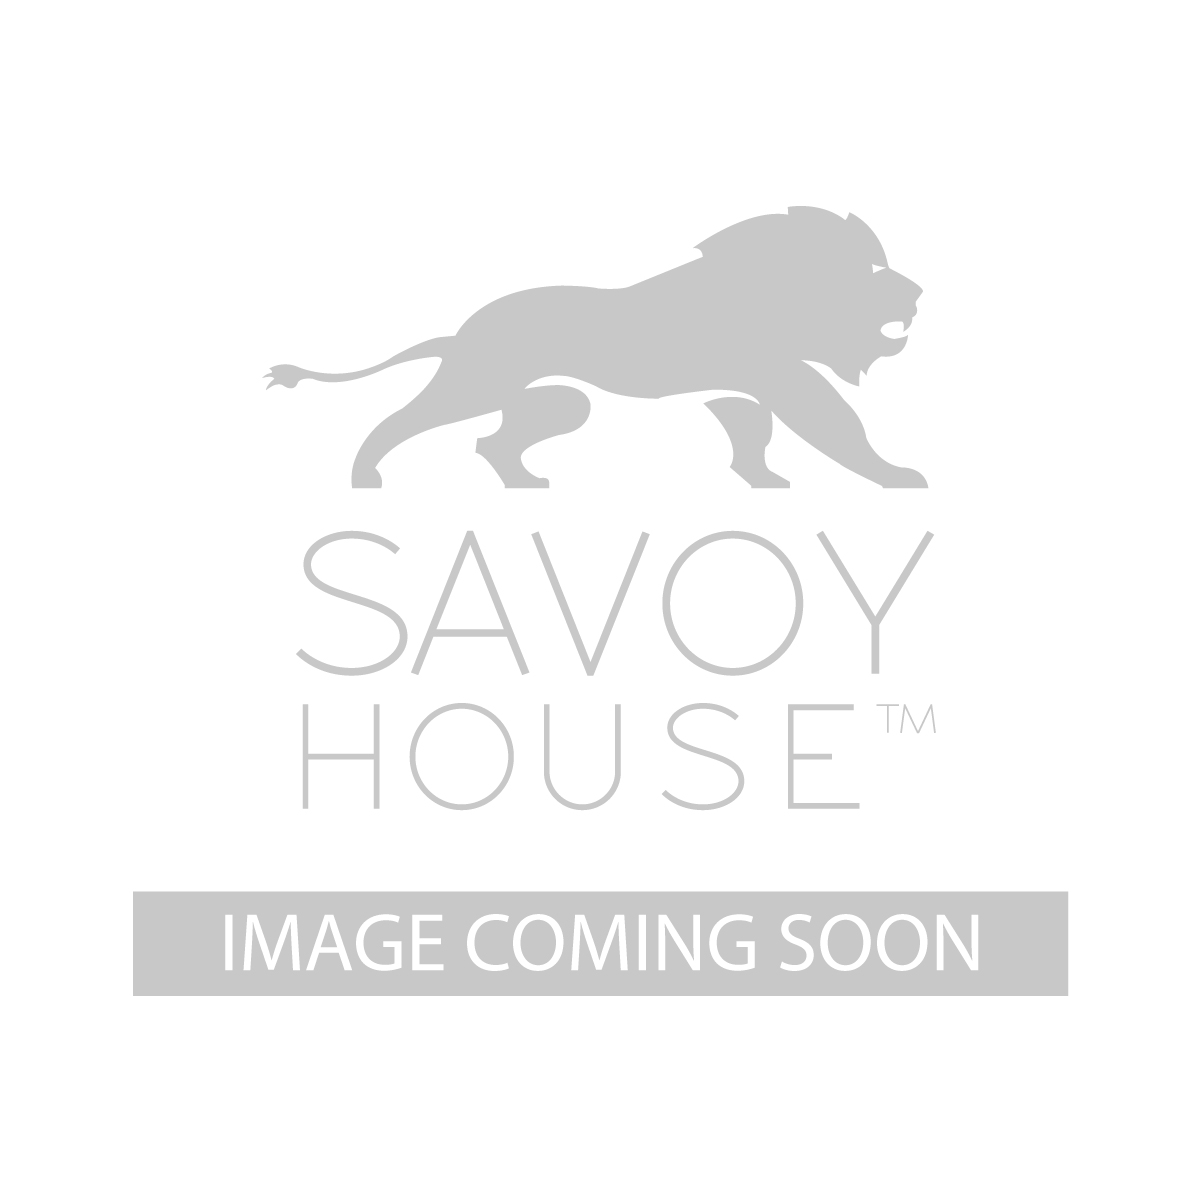 8 4063 2 28 nora 2 light bath bar by savoy house for Savoy house com